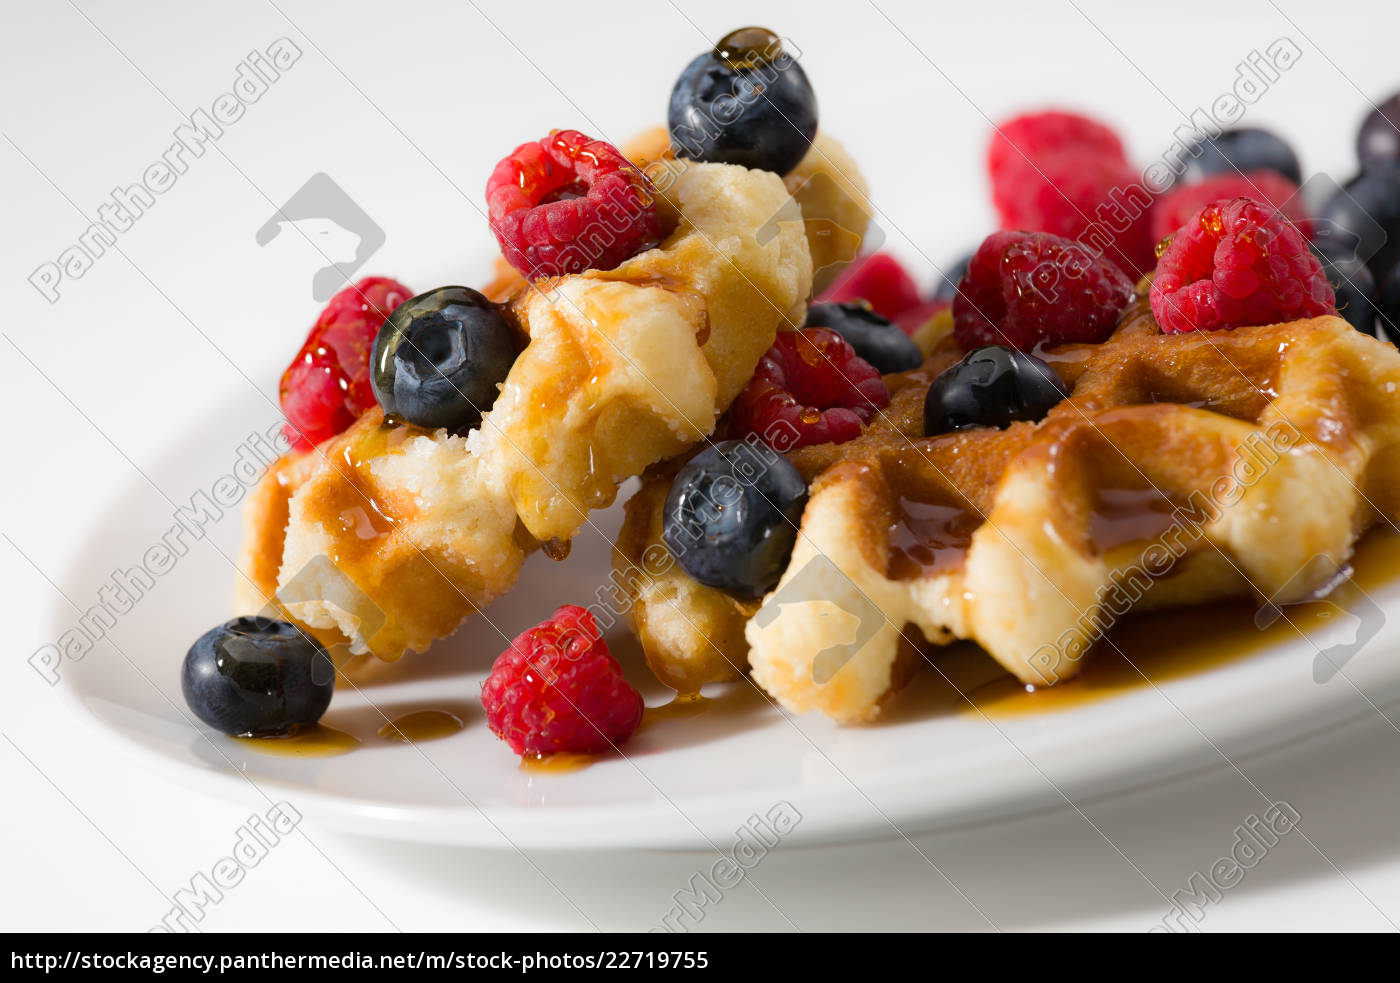 close-up, of, waffles, with, berries, and - 22719755